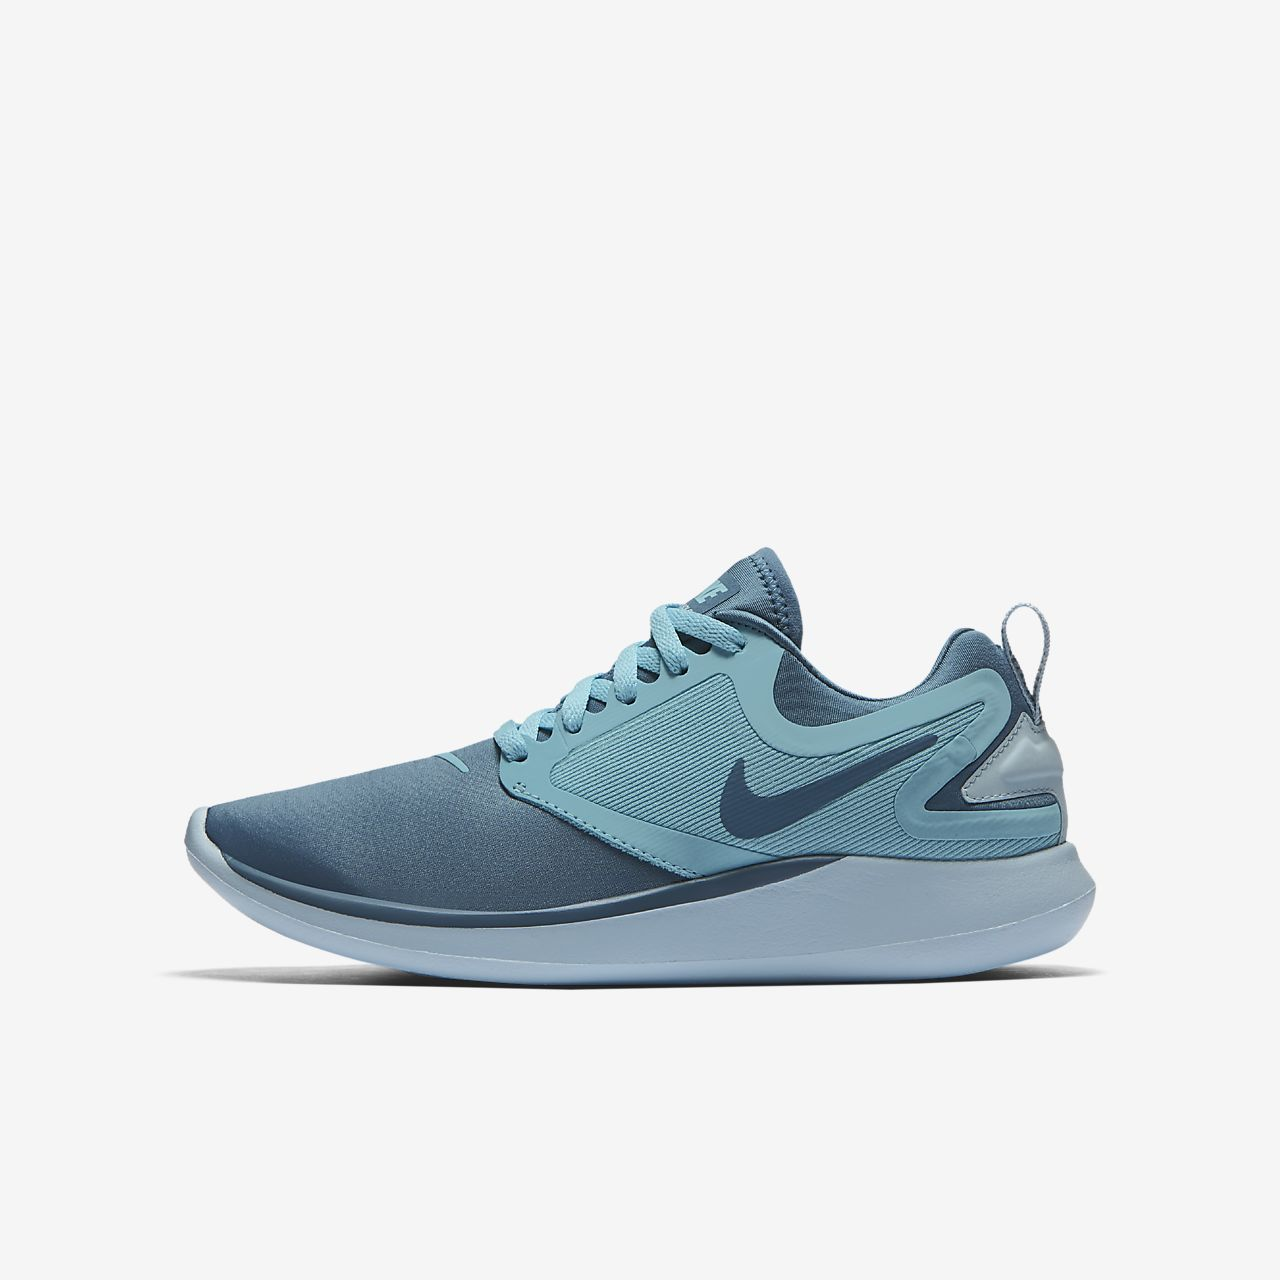 ... Nike LunarSolo Big Kids' Running Shoe